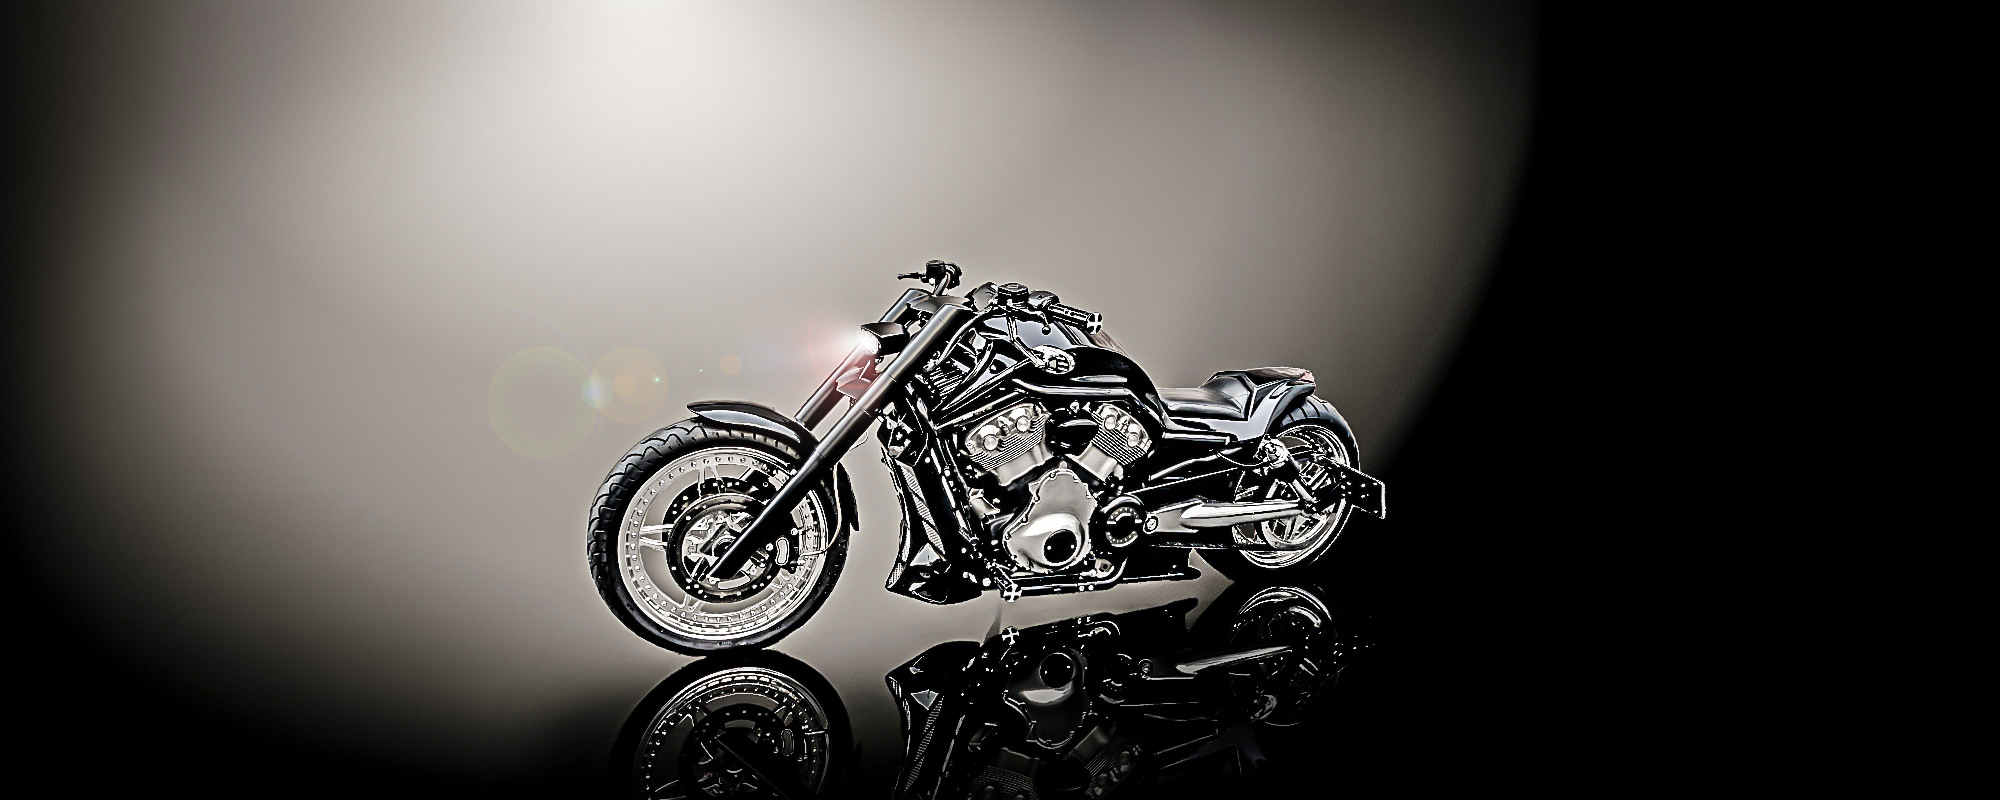 v-rod-2007-stealth-2-1